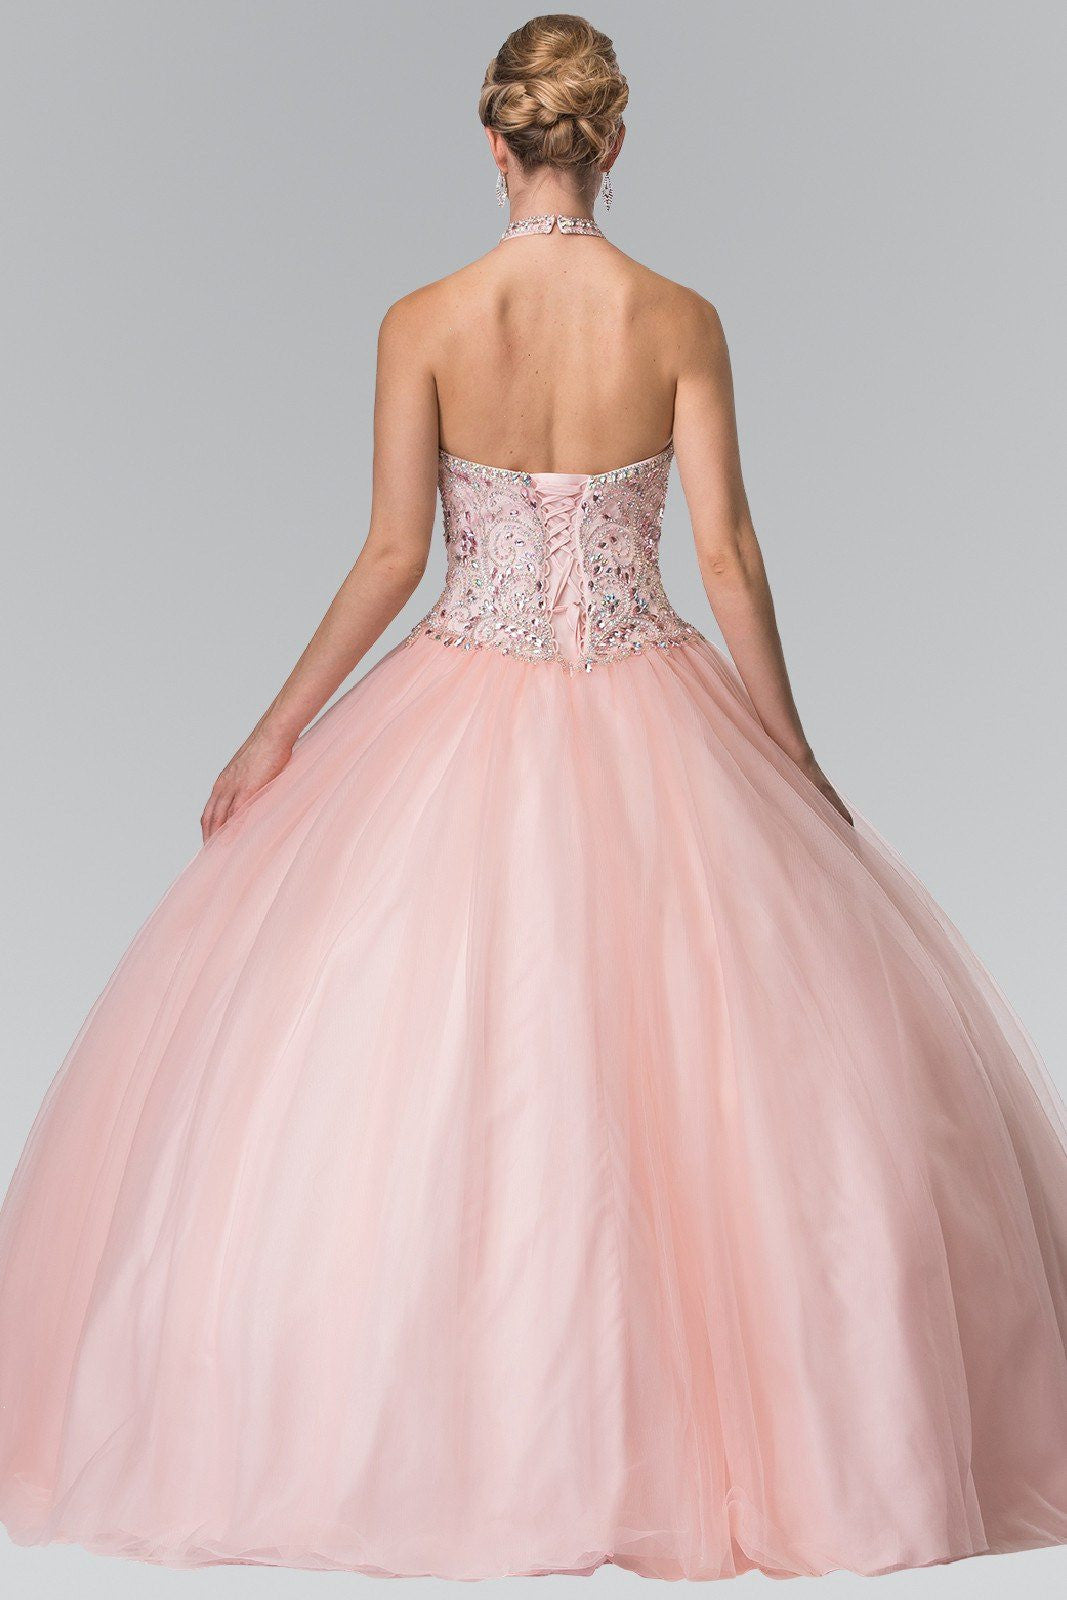 a5622ae9991 Pink Ball Gown Quinceanera Dresses - Data Dynamic AG